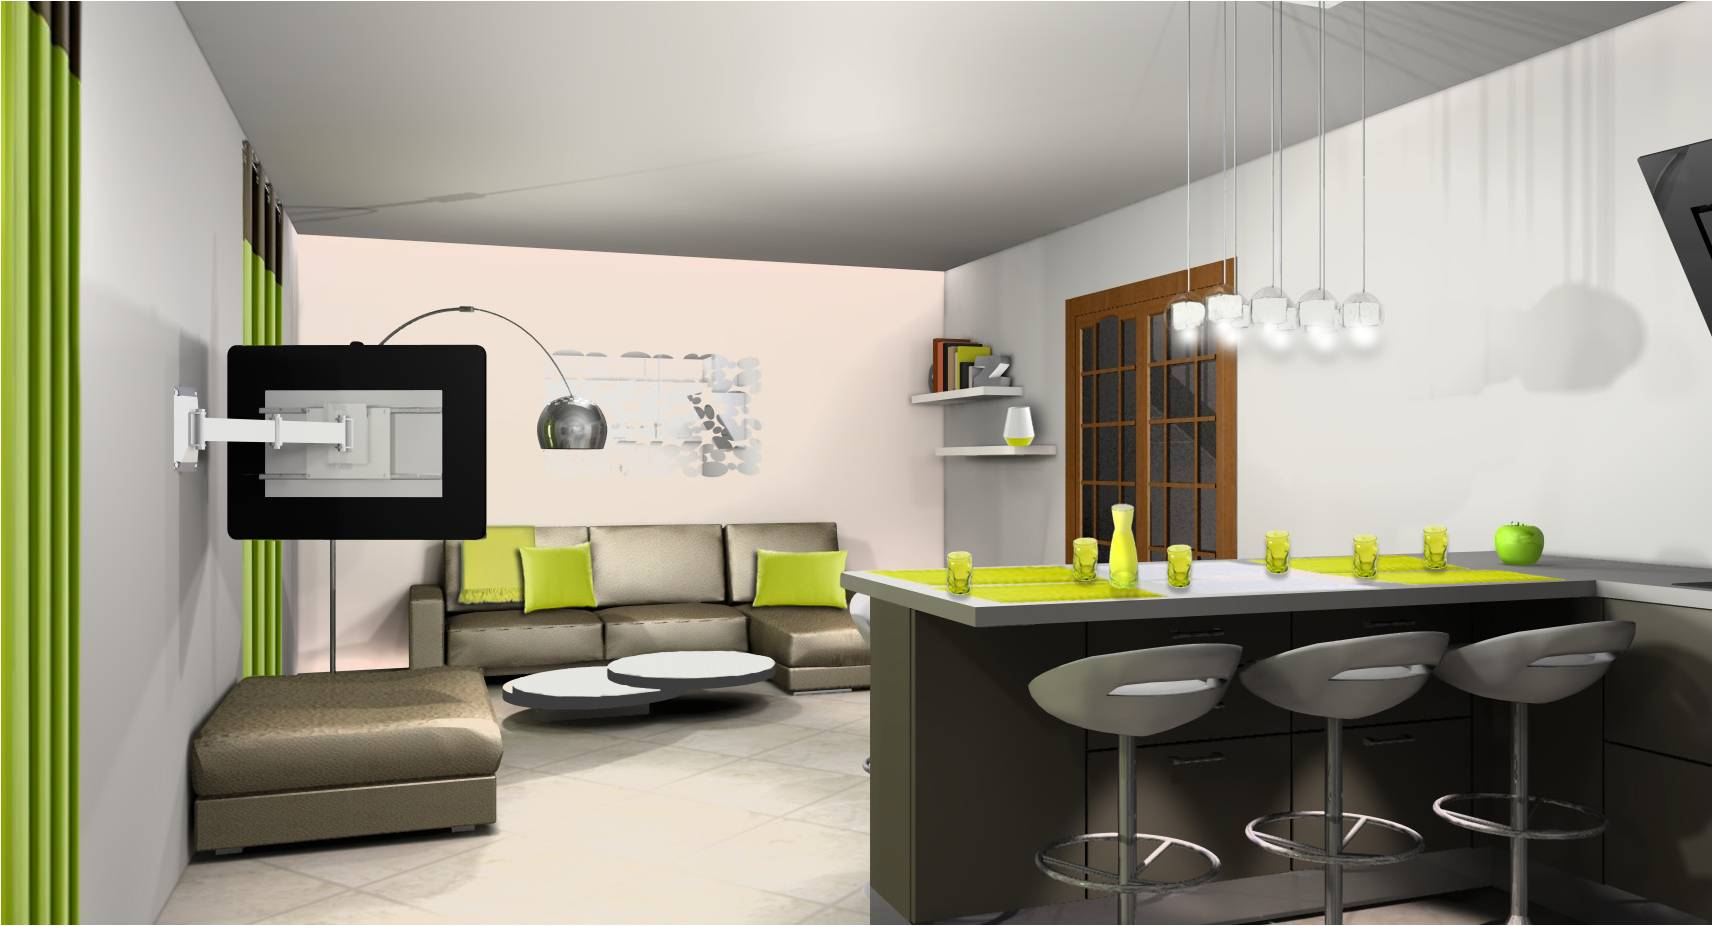 D co cuisine et salon exemples d 39 am nagements for Exemple de deco salon